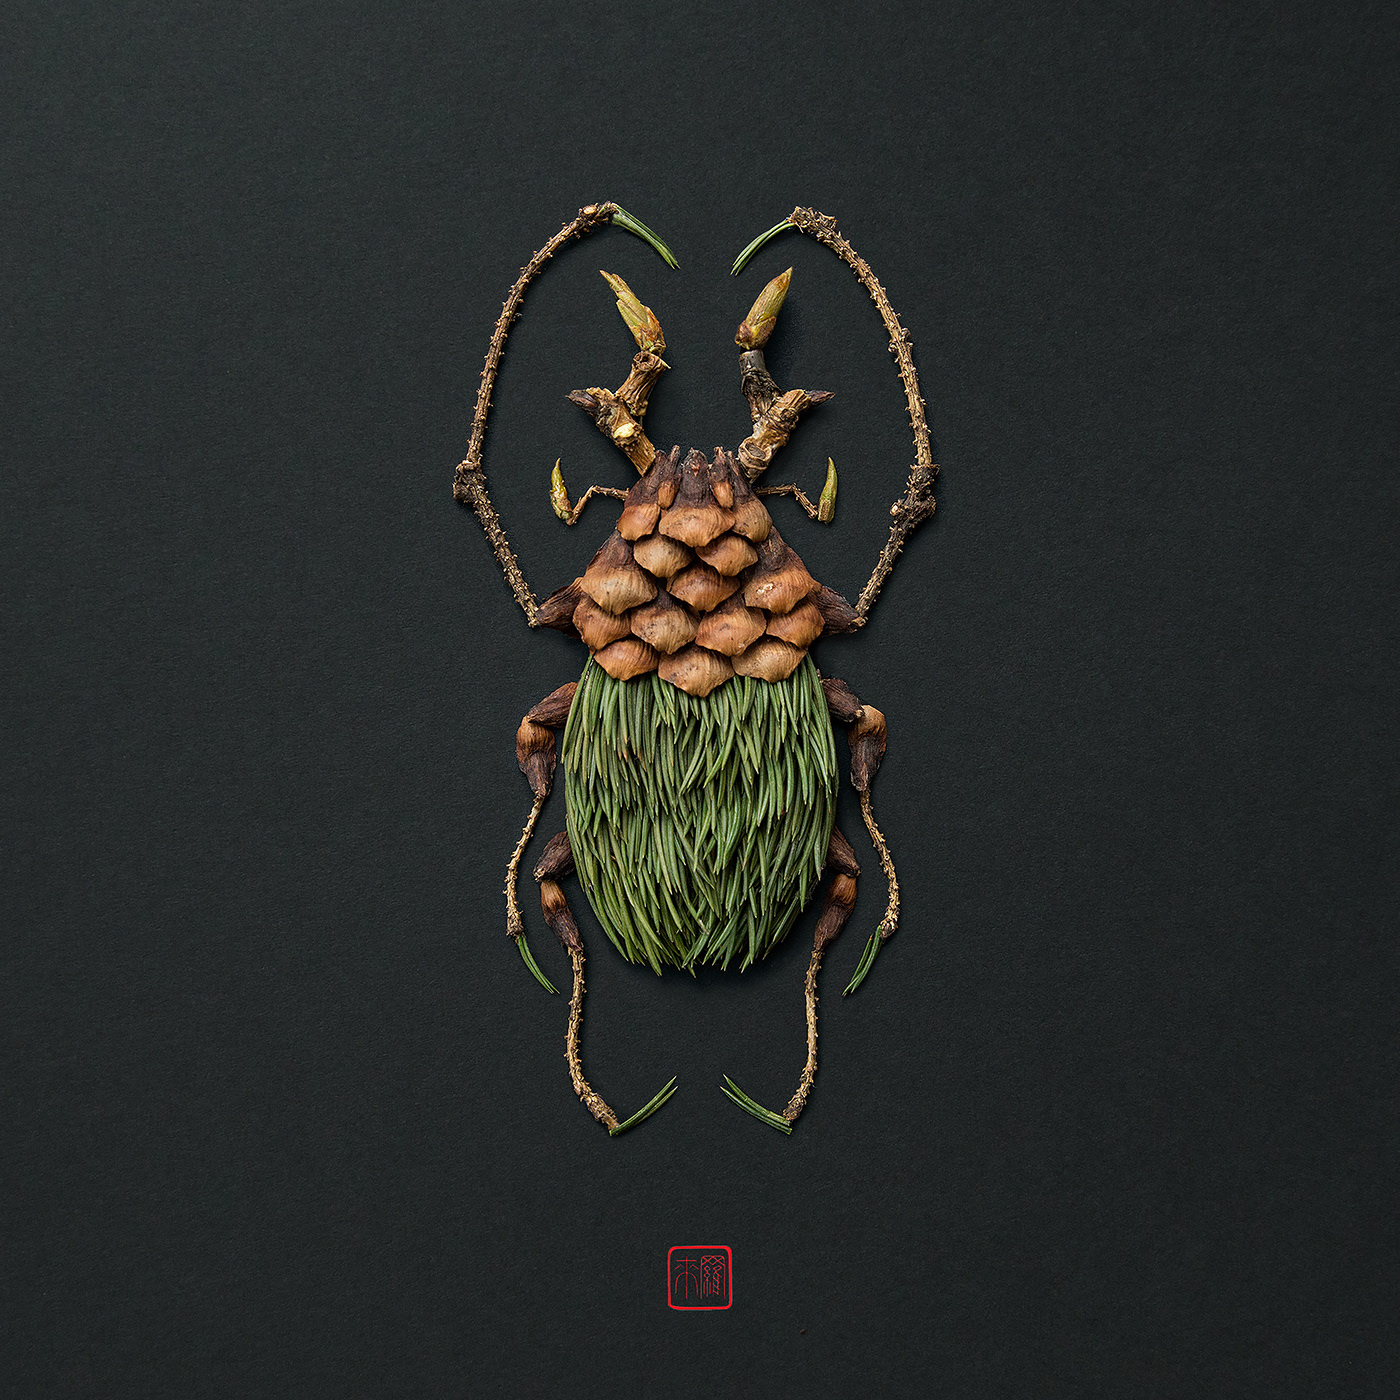 Natura Insects & Animals / работы Raku Inoue